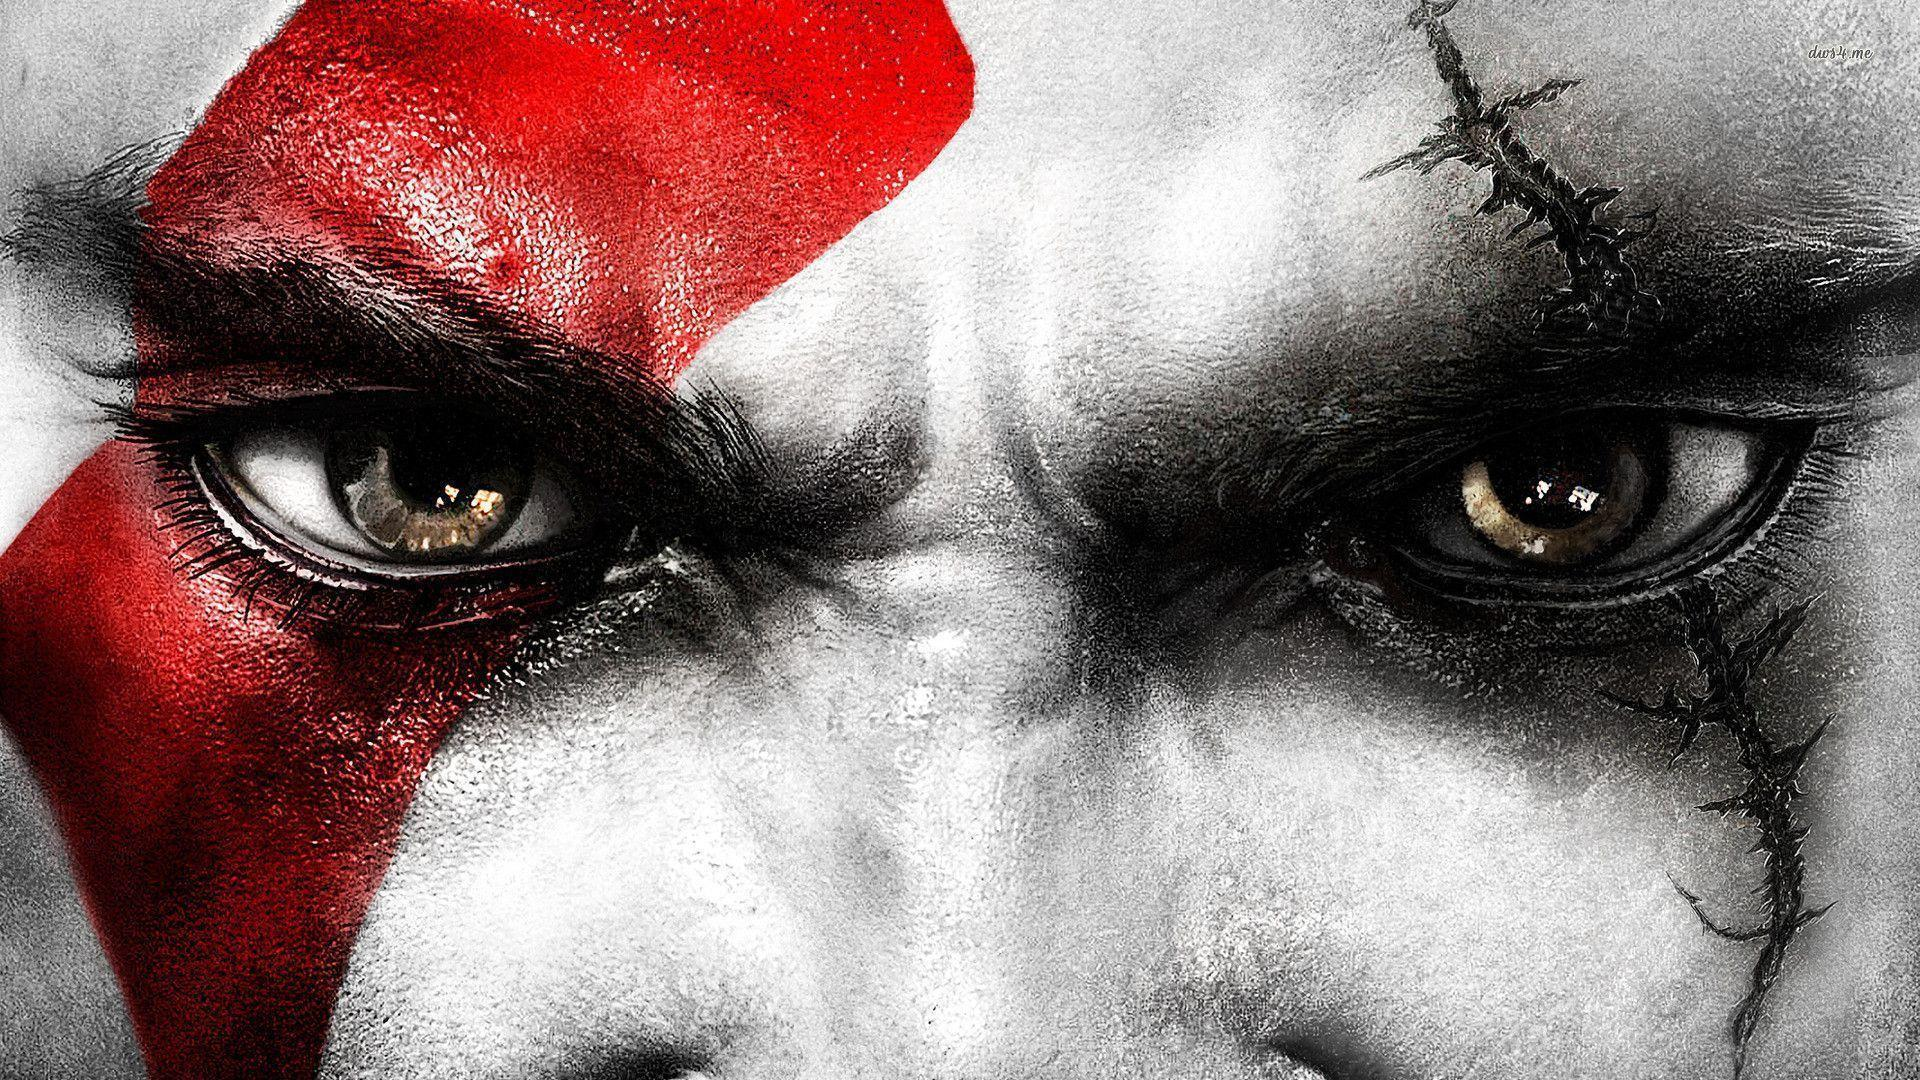 Kratos - God of War 3 wallpaper - Game wallpapers - #